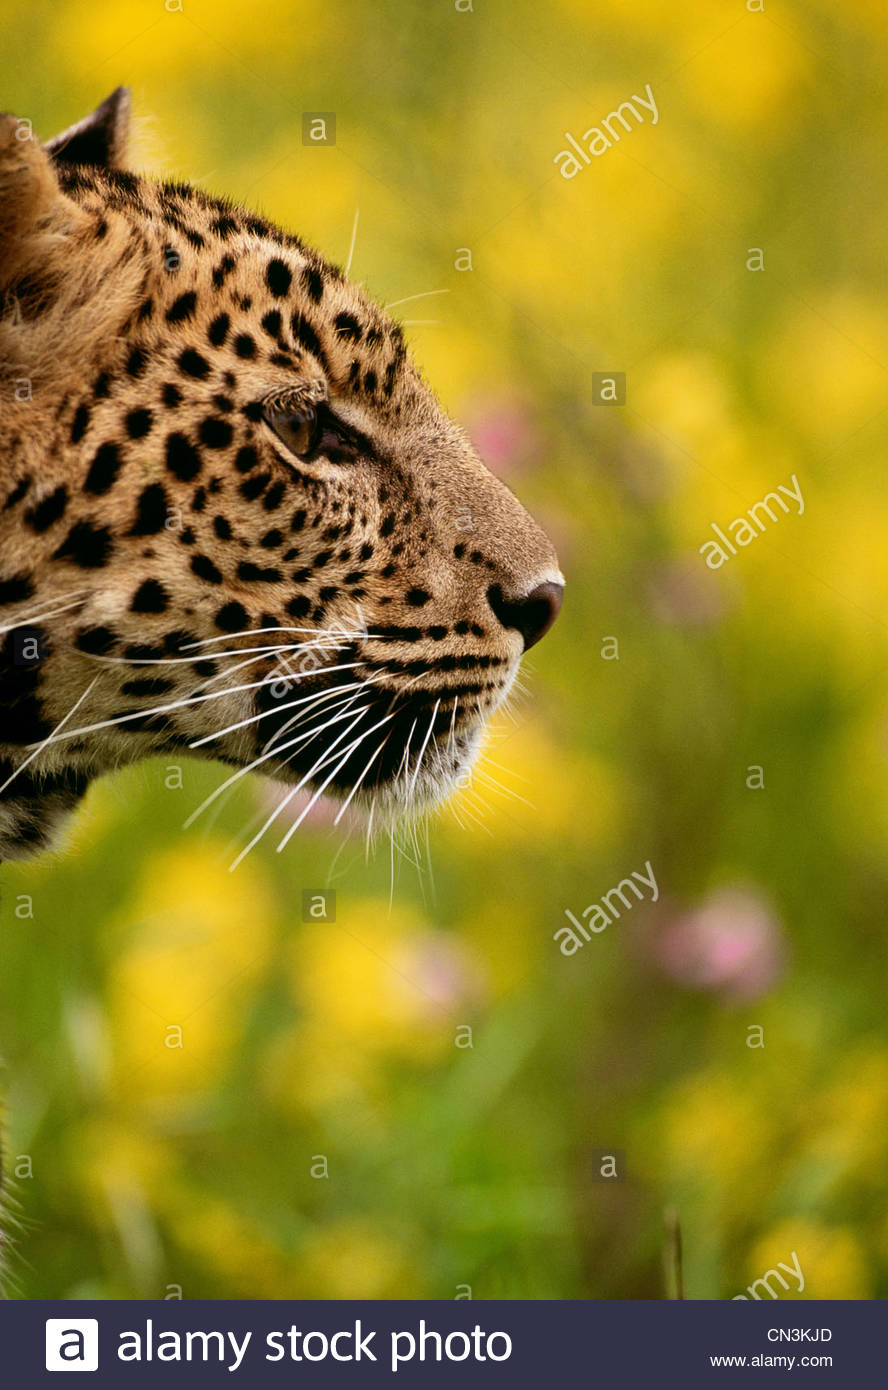 Leopard, South Africa - Stock Image